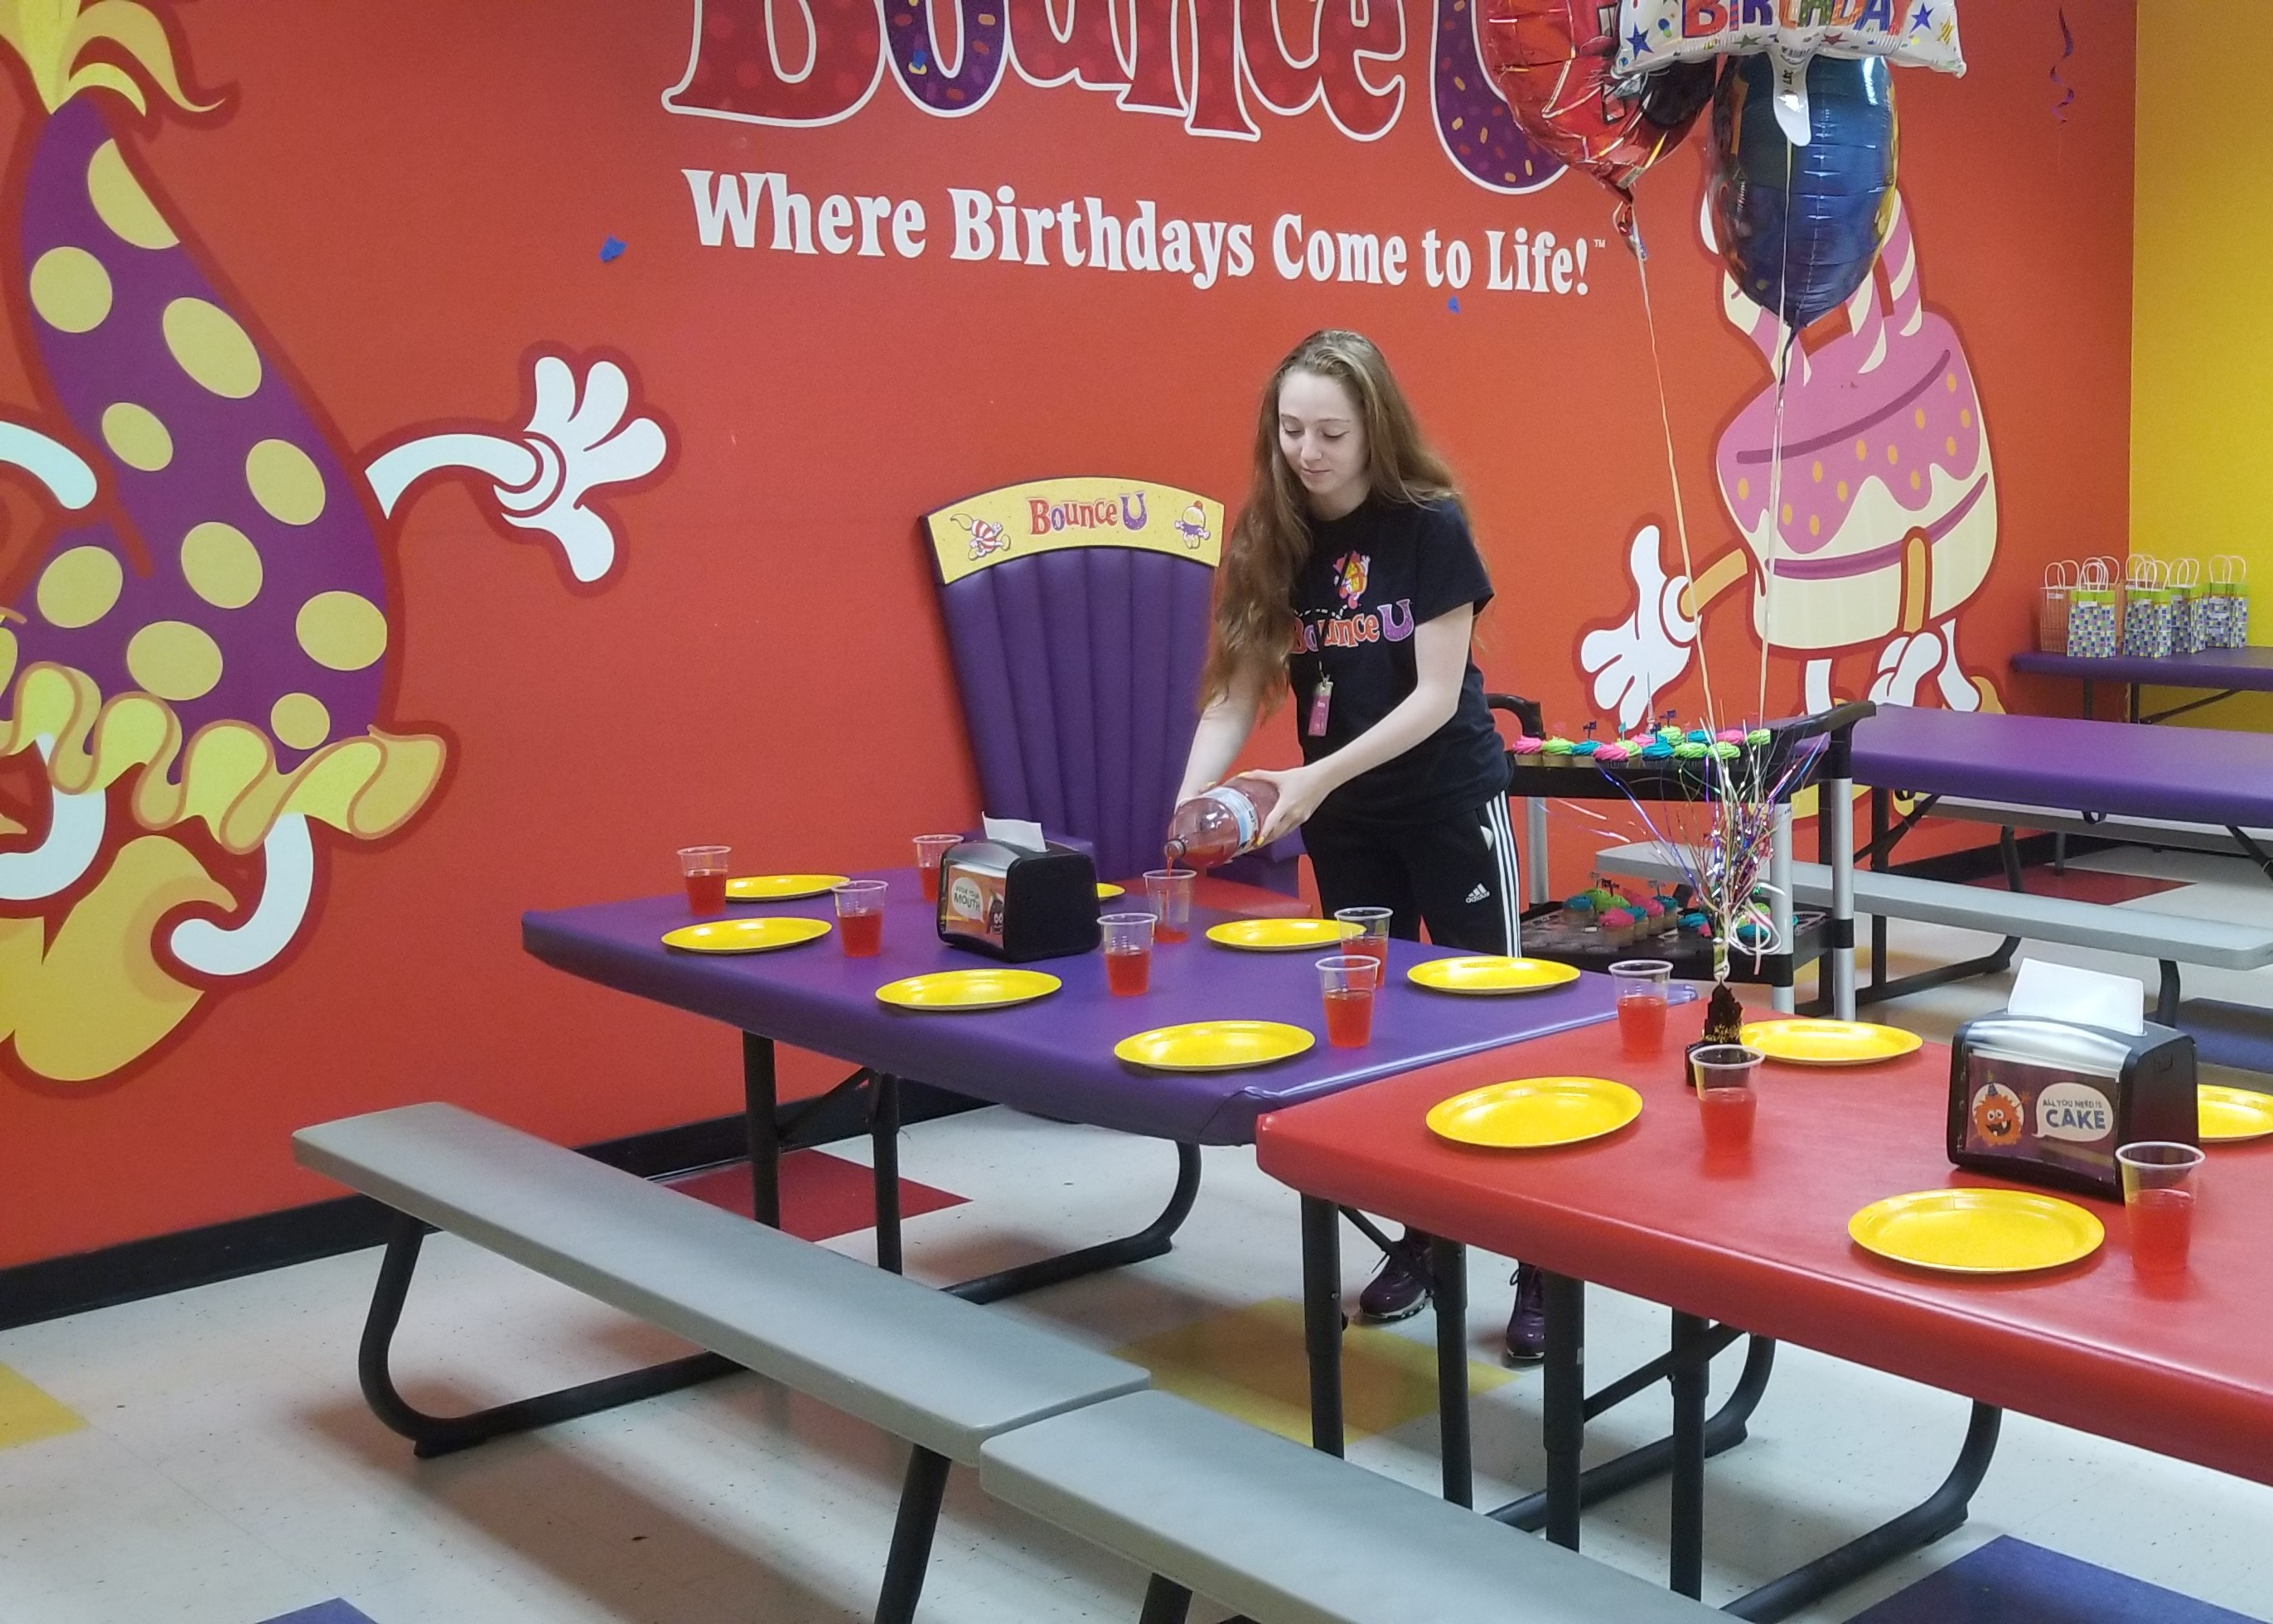 BounceU birthday party server pouring drinks in private party room.